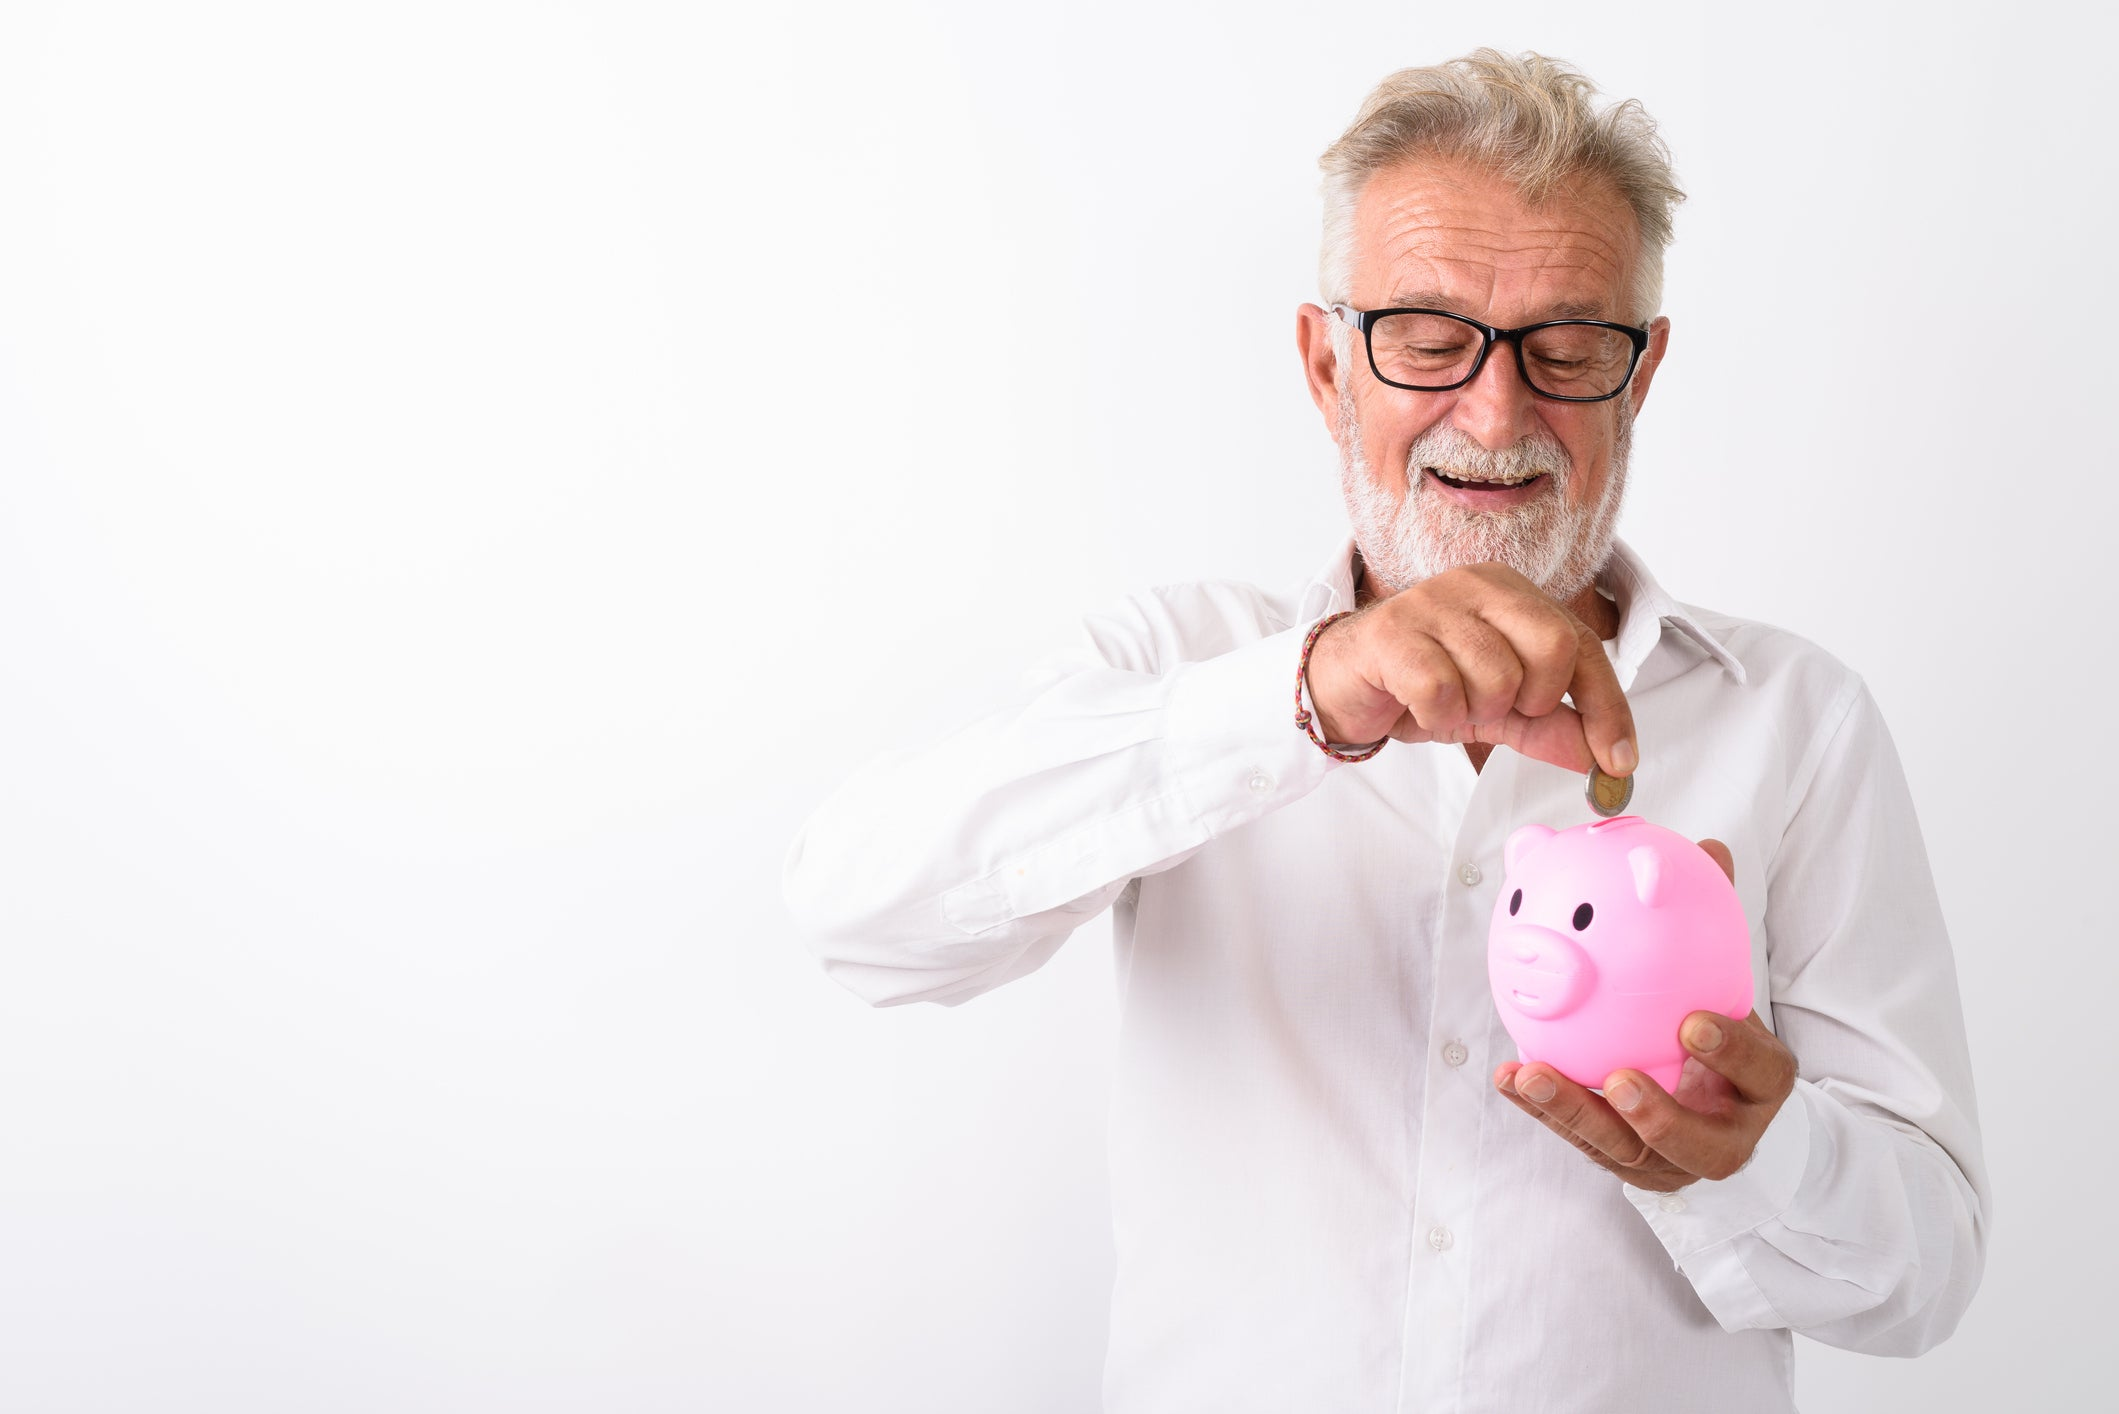 6 Unexpected Sources of Retirement Income